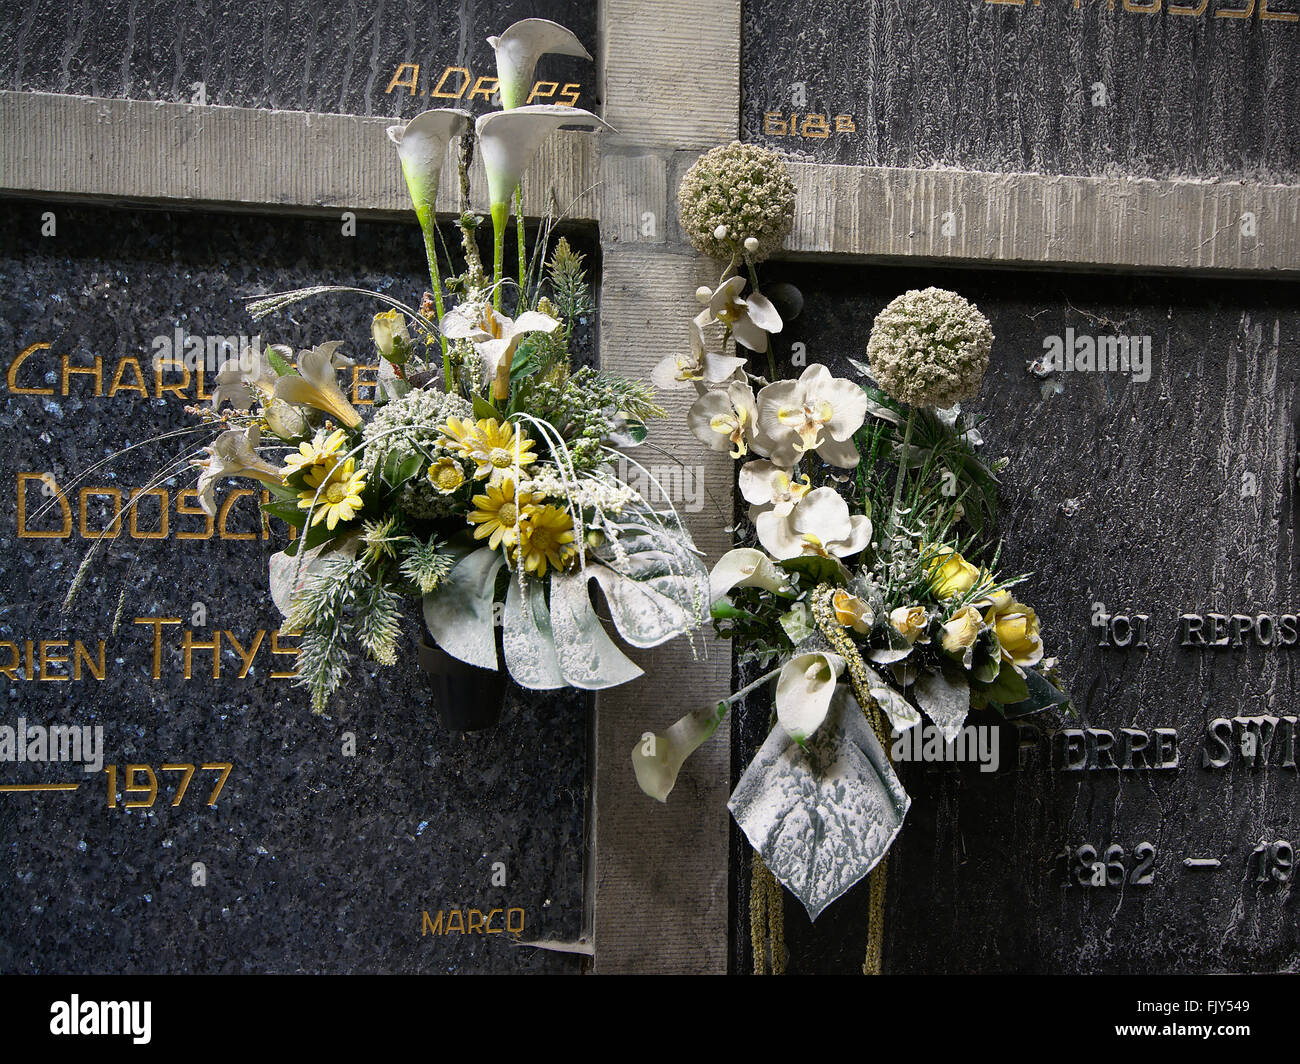 Dusty fake flowers decorating graves in the catacombs of laken ...